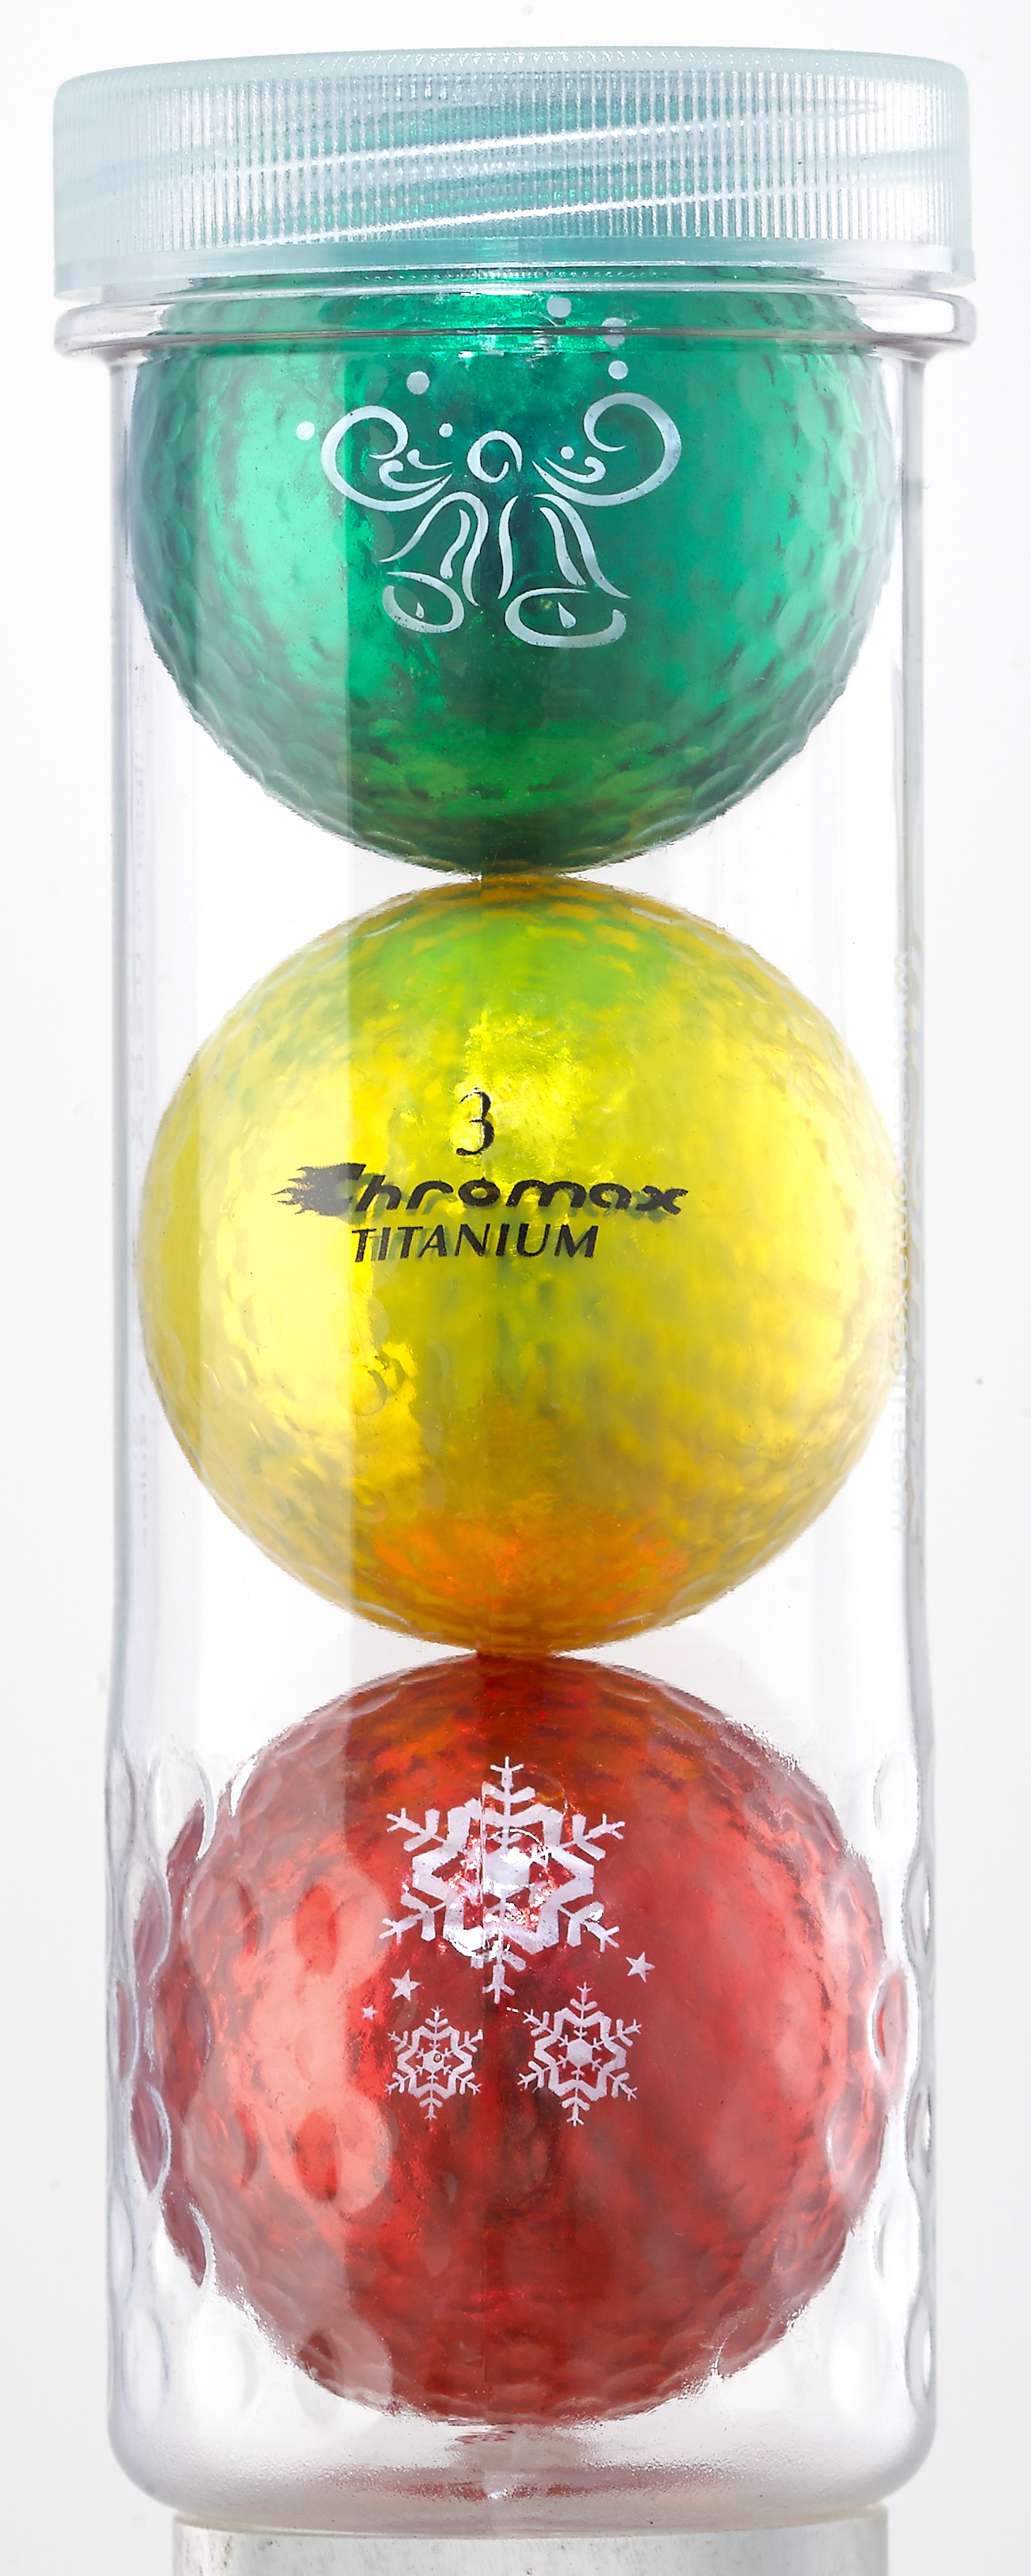 Holiday Golf Balls - Chromax M1x 3 Ball Tube (Green, Gold, Red) CHOL3RGG